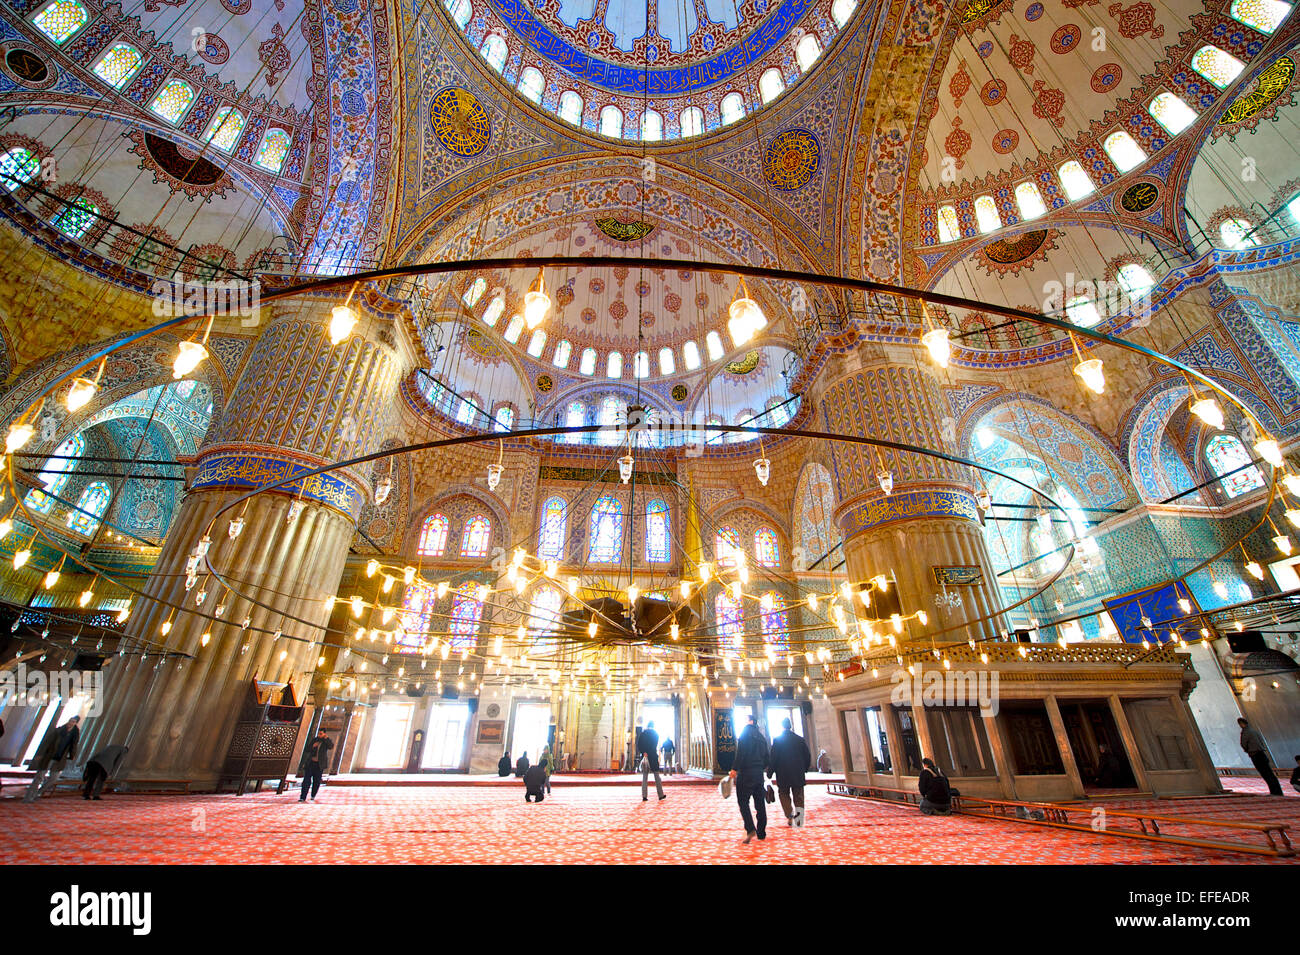 The interior of the Blue Mosque is pictured as part of a photo essay on winter breaks in Istanbul, Turkey. - Stock Image